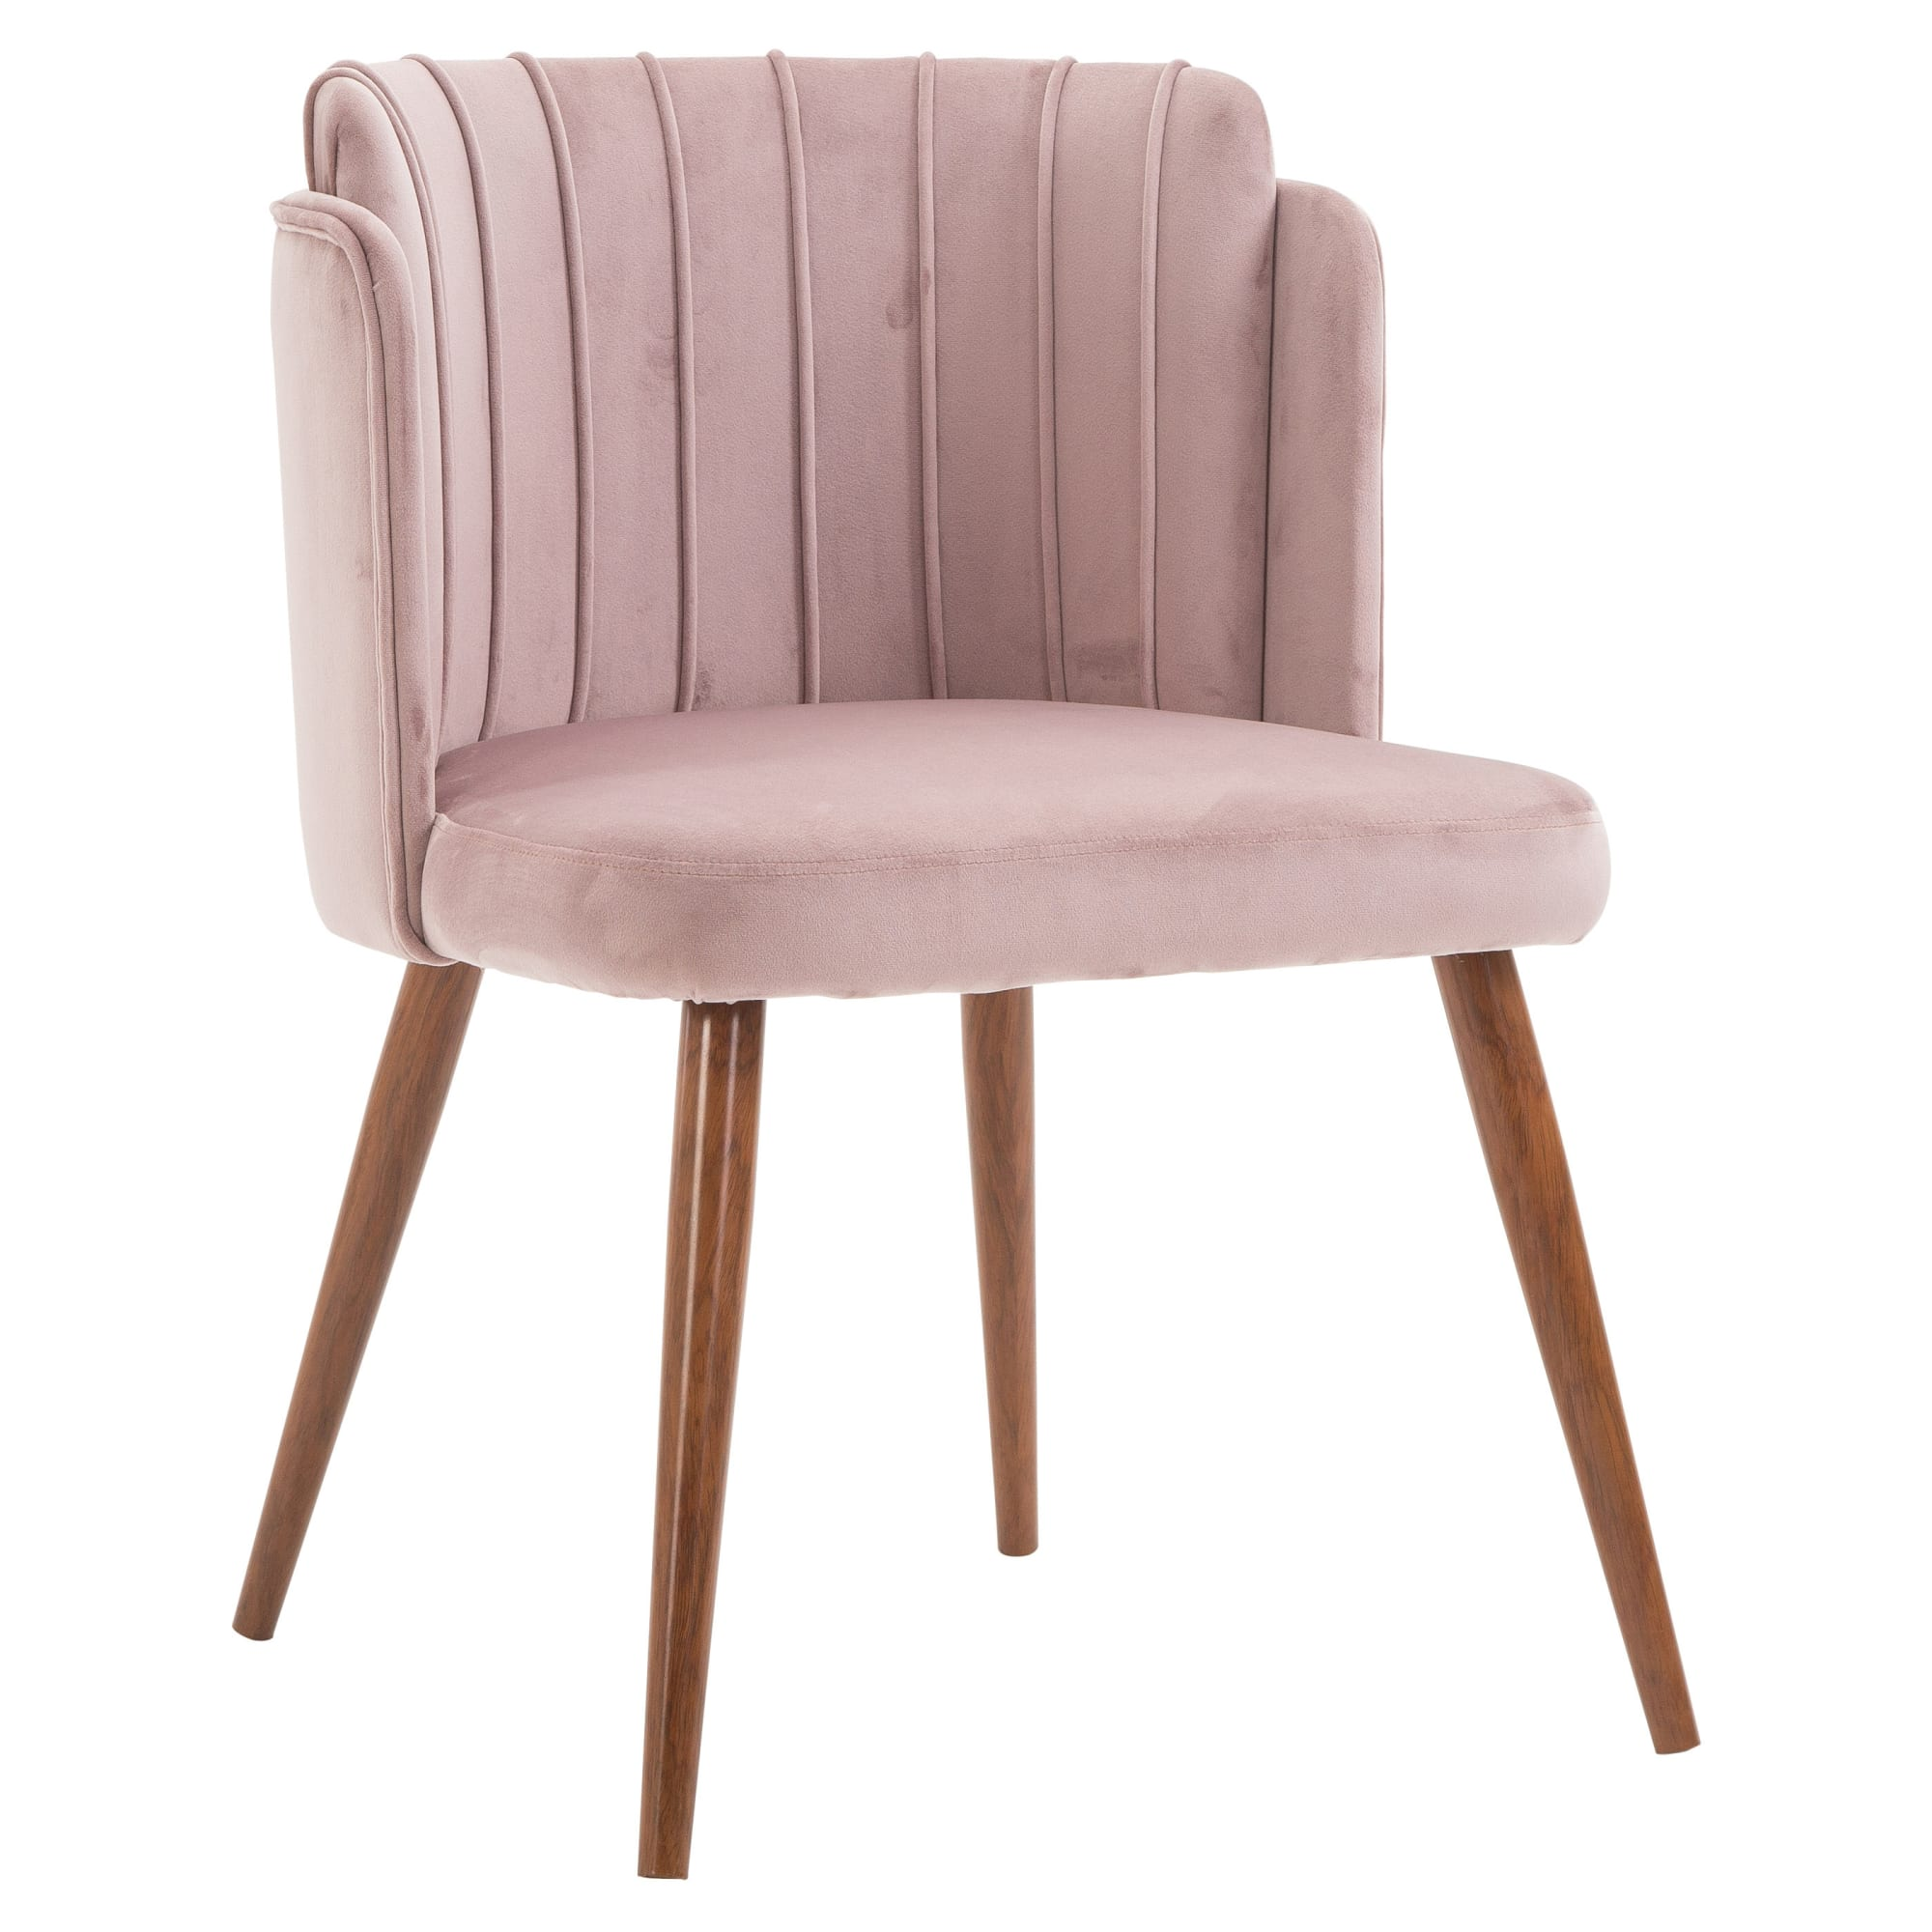 Milana Upholstered Chair